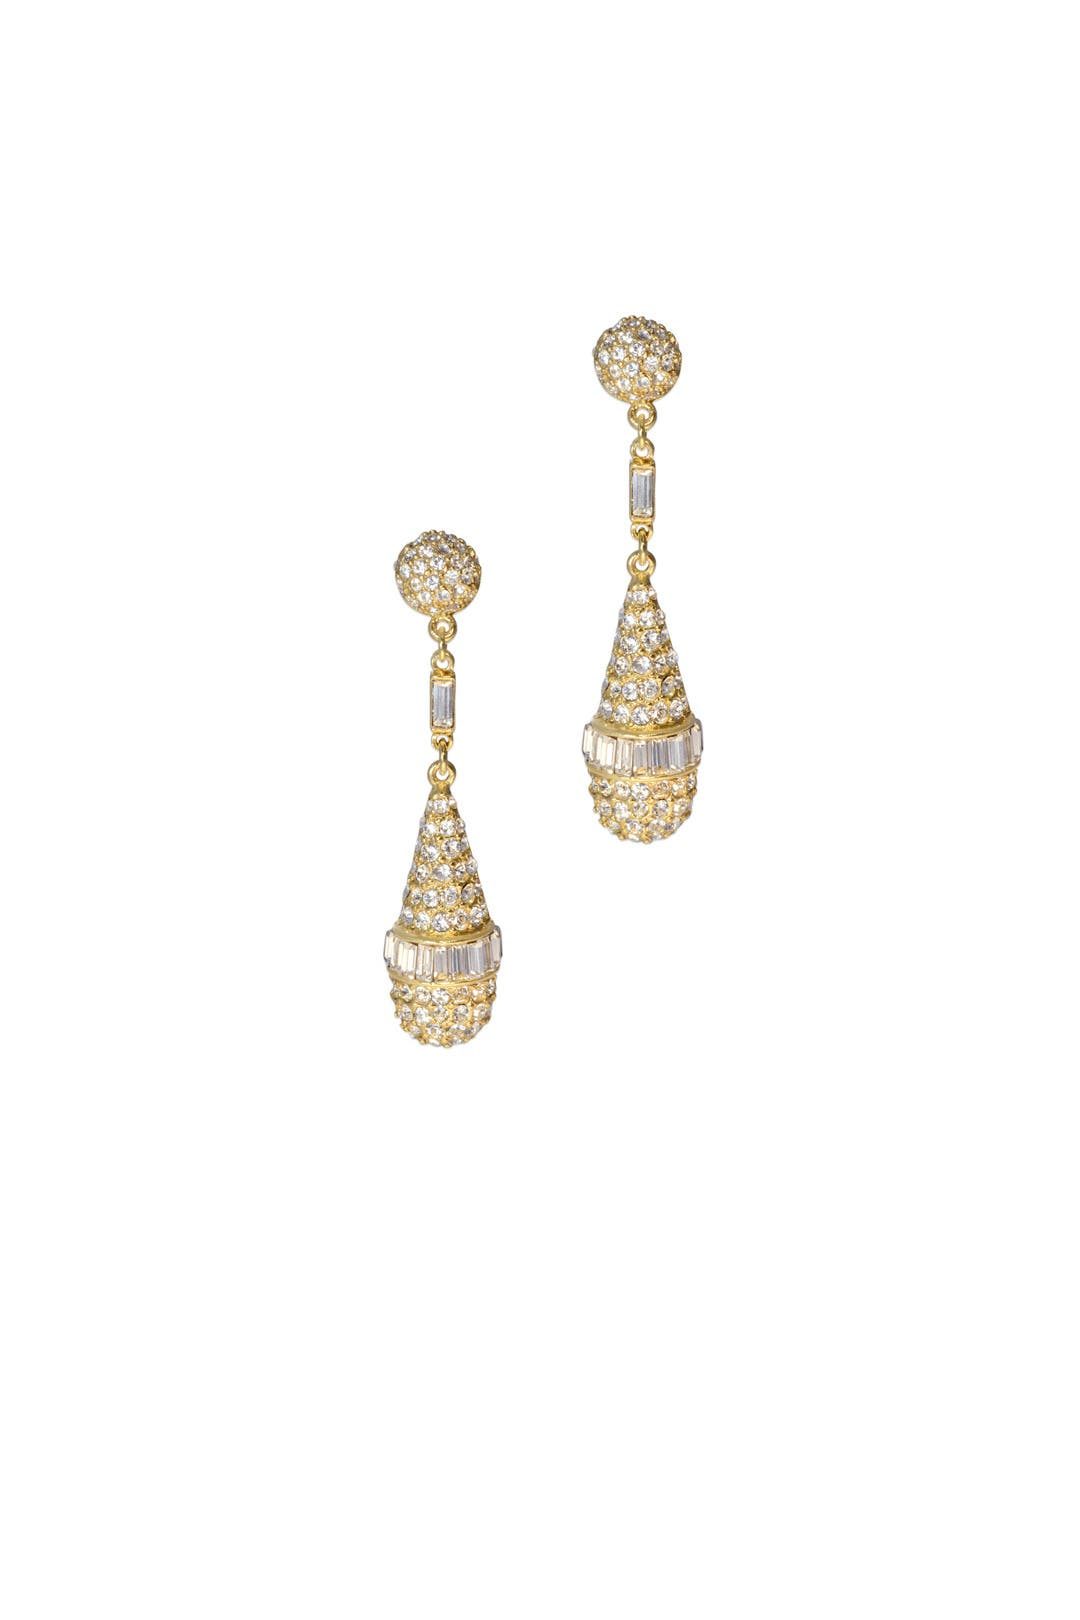 Gold Deco Crystal Teardrops by Ben-Amun